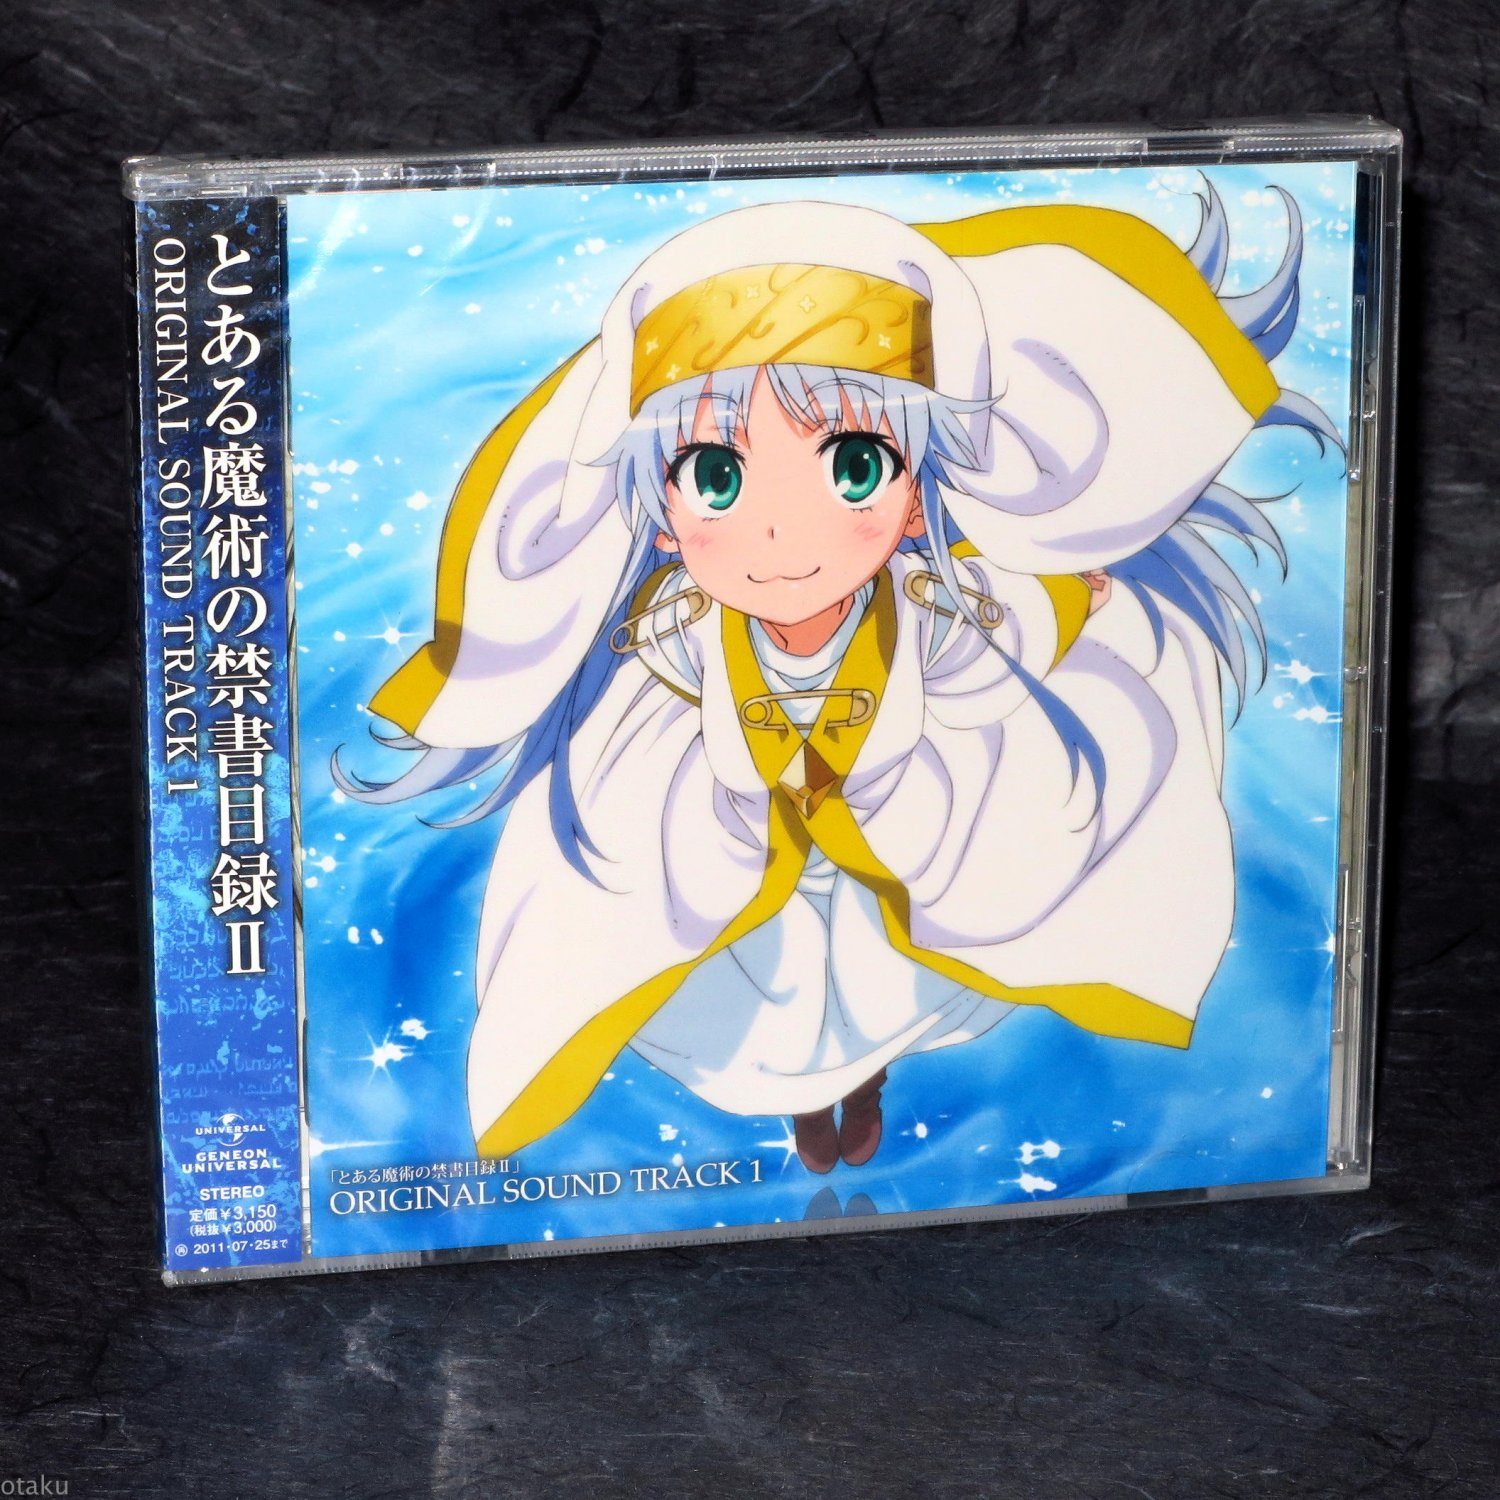 Toaru Majutsu no Index II ORIGINAL SOUND TRACK 1 OST Japan Anime Music CD NEW